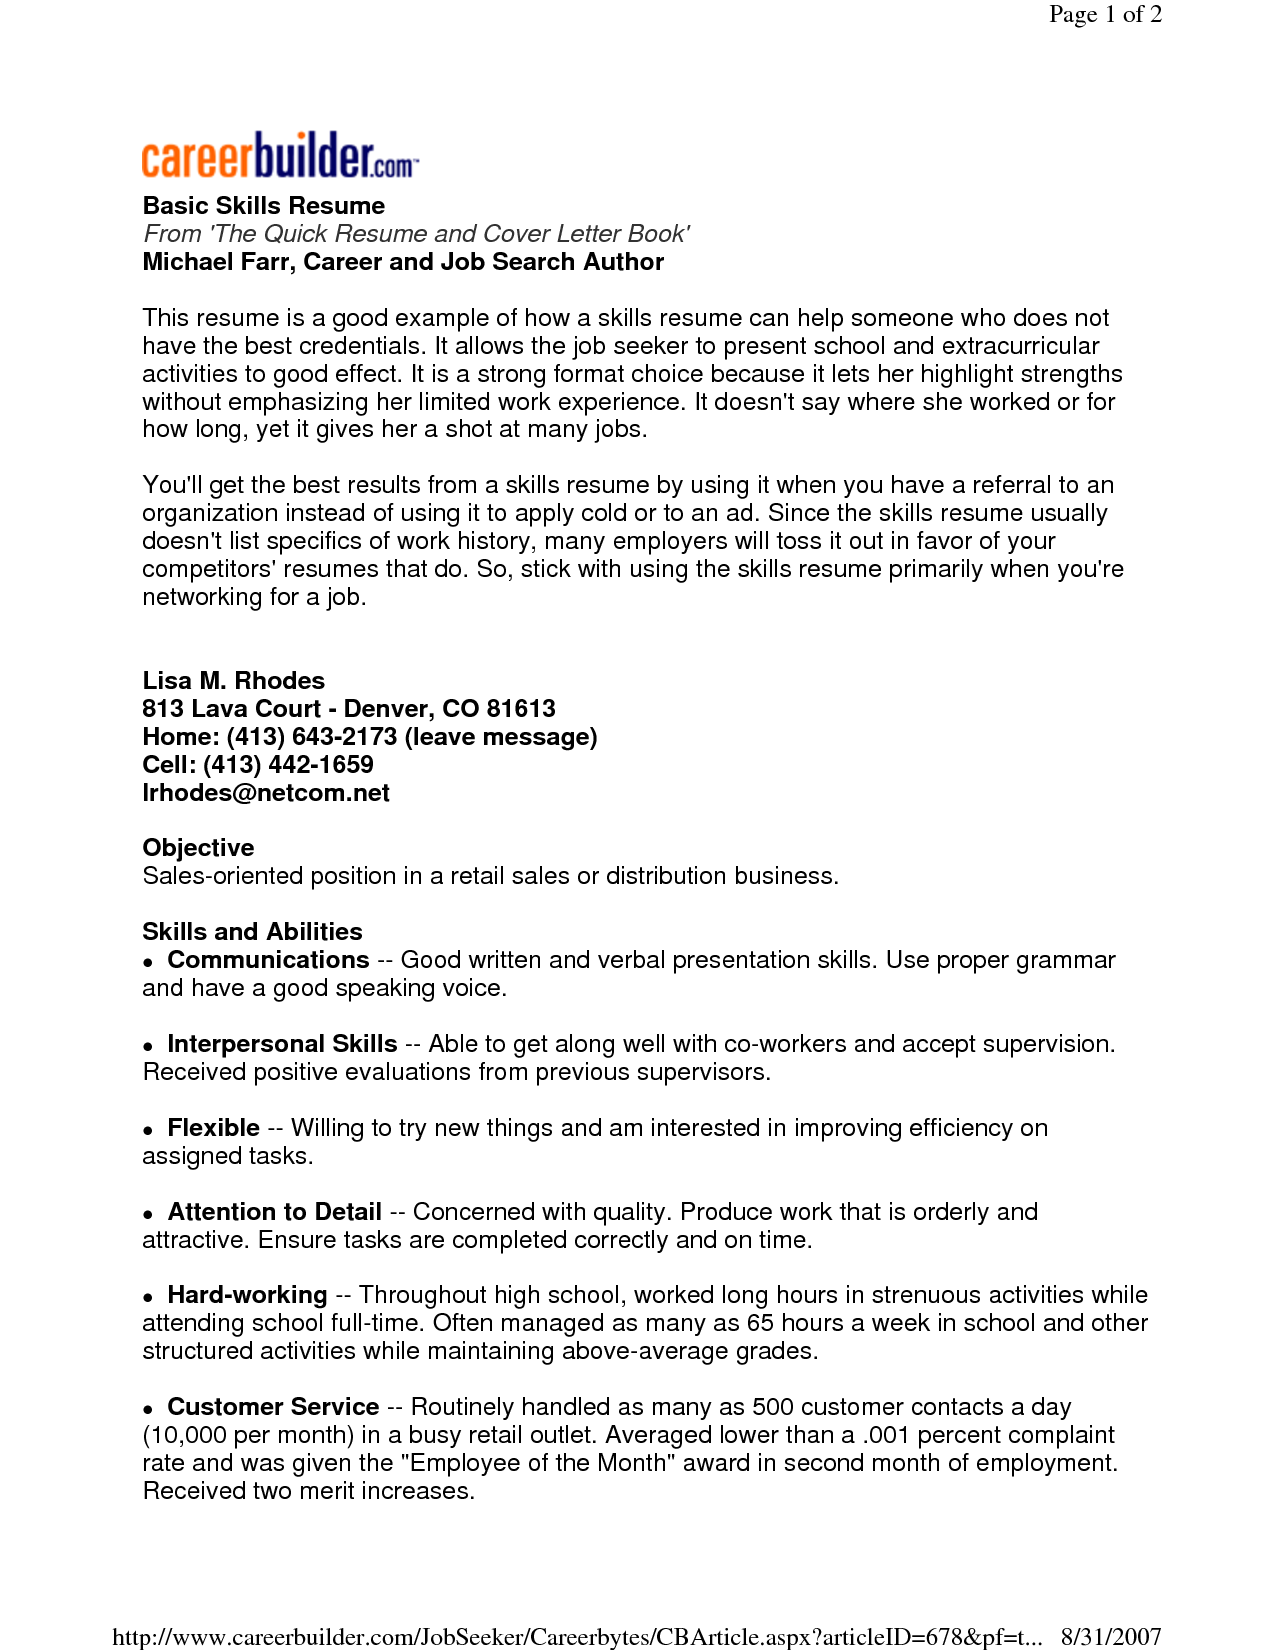 Skills And Abilities On A Resume Find Here The Sample Resume That Best Fits Your Profile Order Get